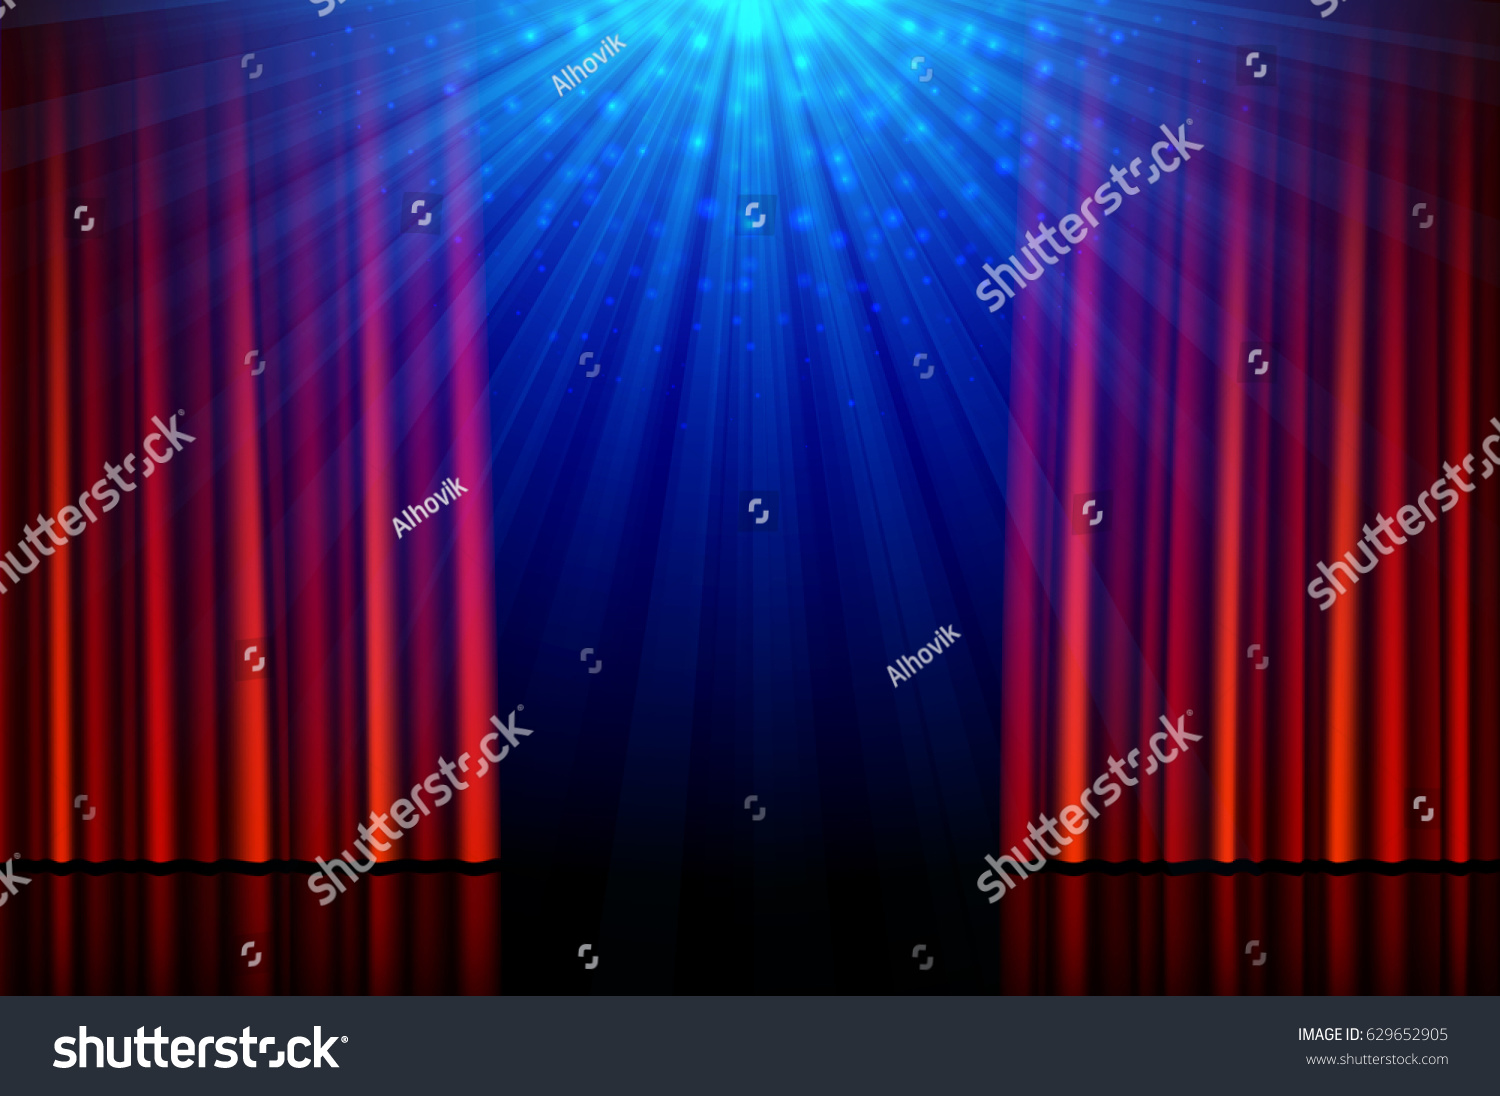 Red curtains with spotlight - Stage With Red Opening Curtains And Spotlights Vector Illustration